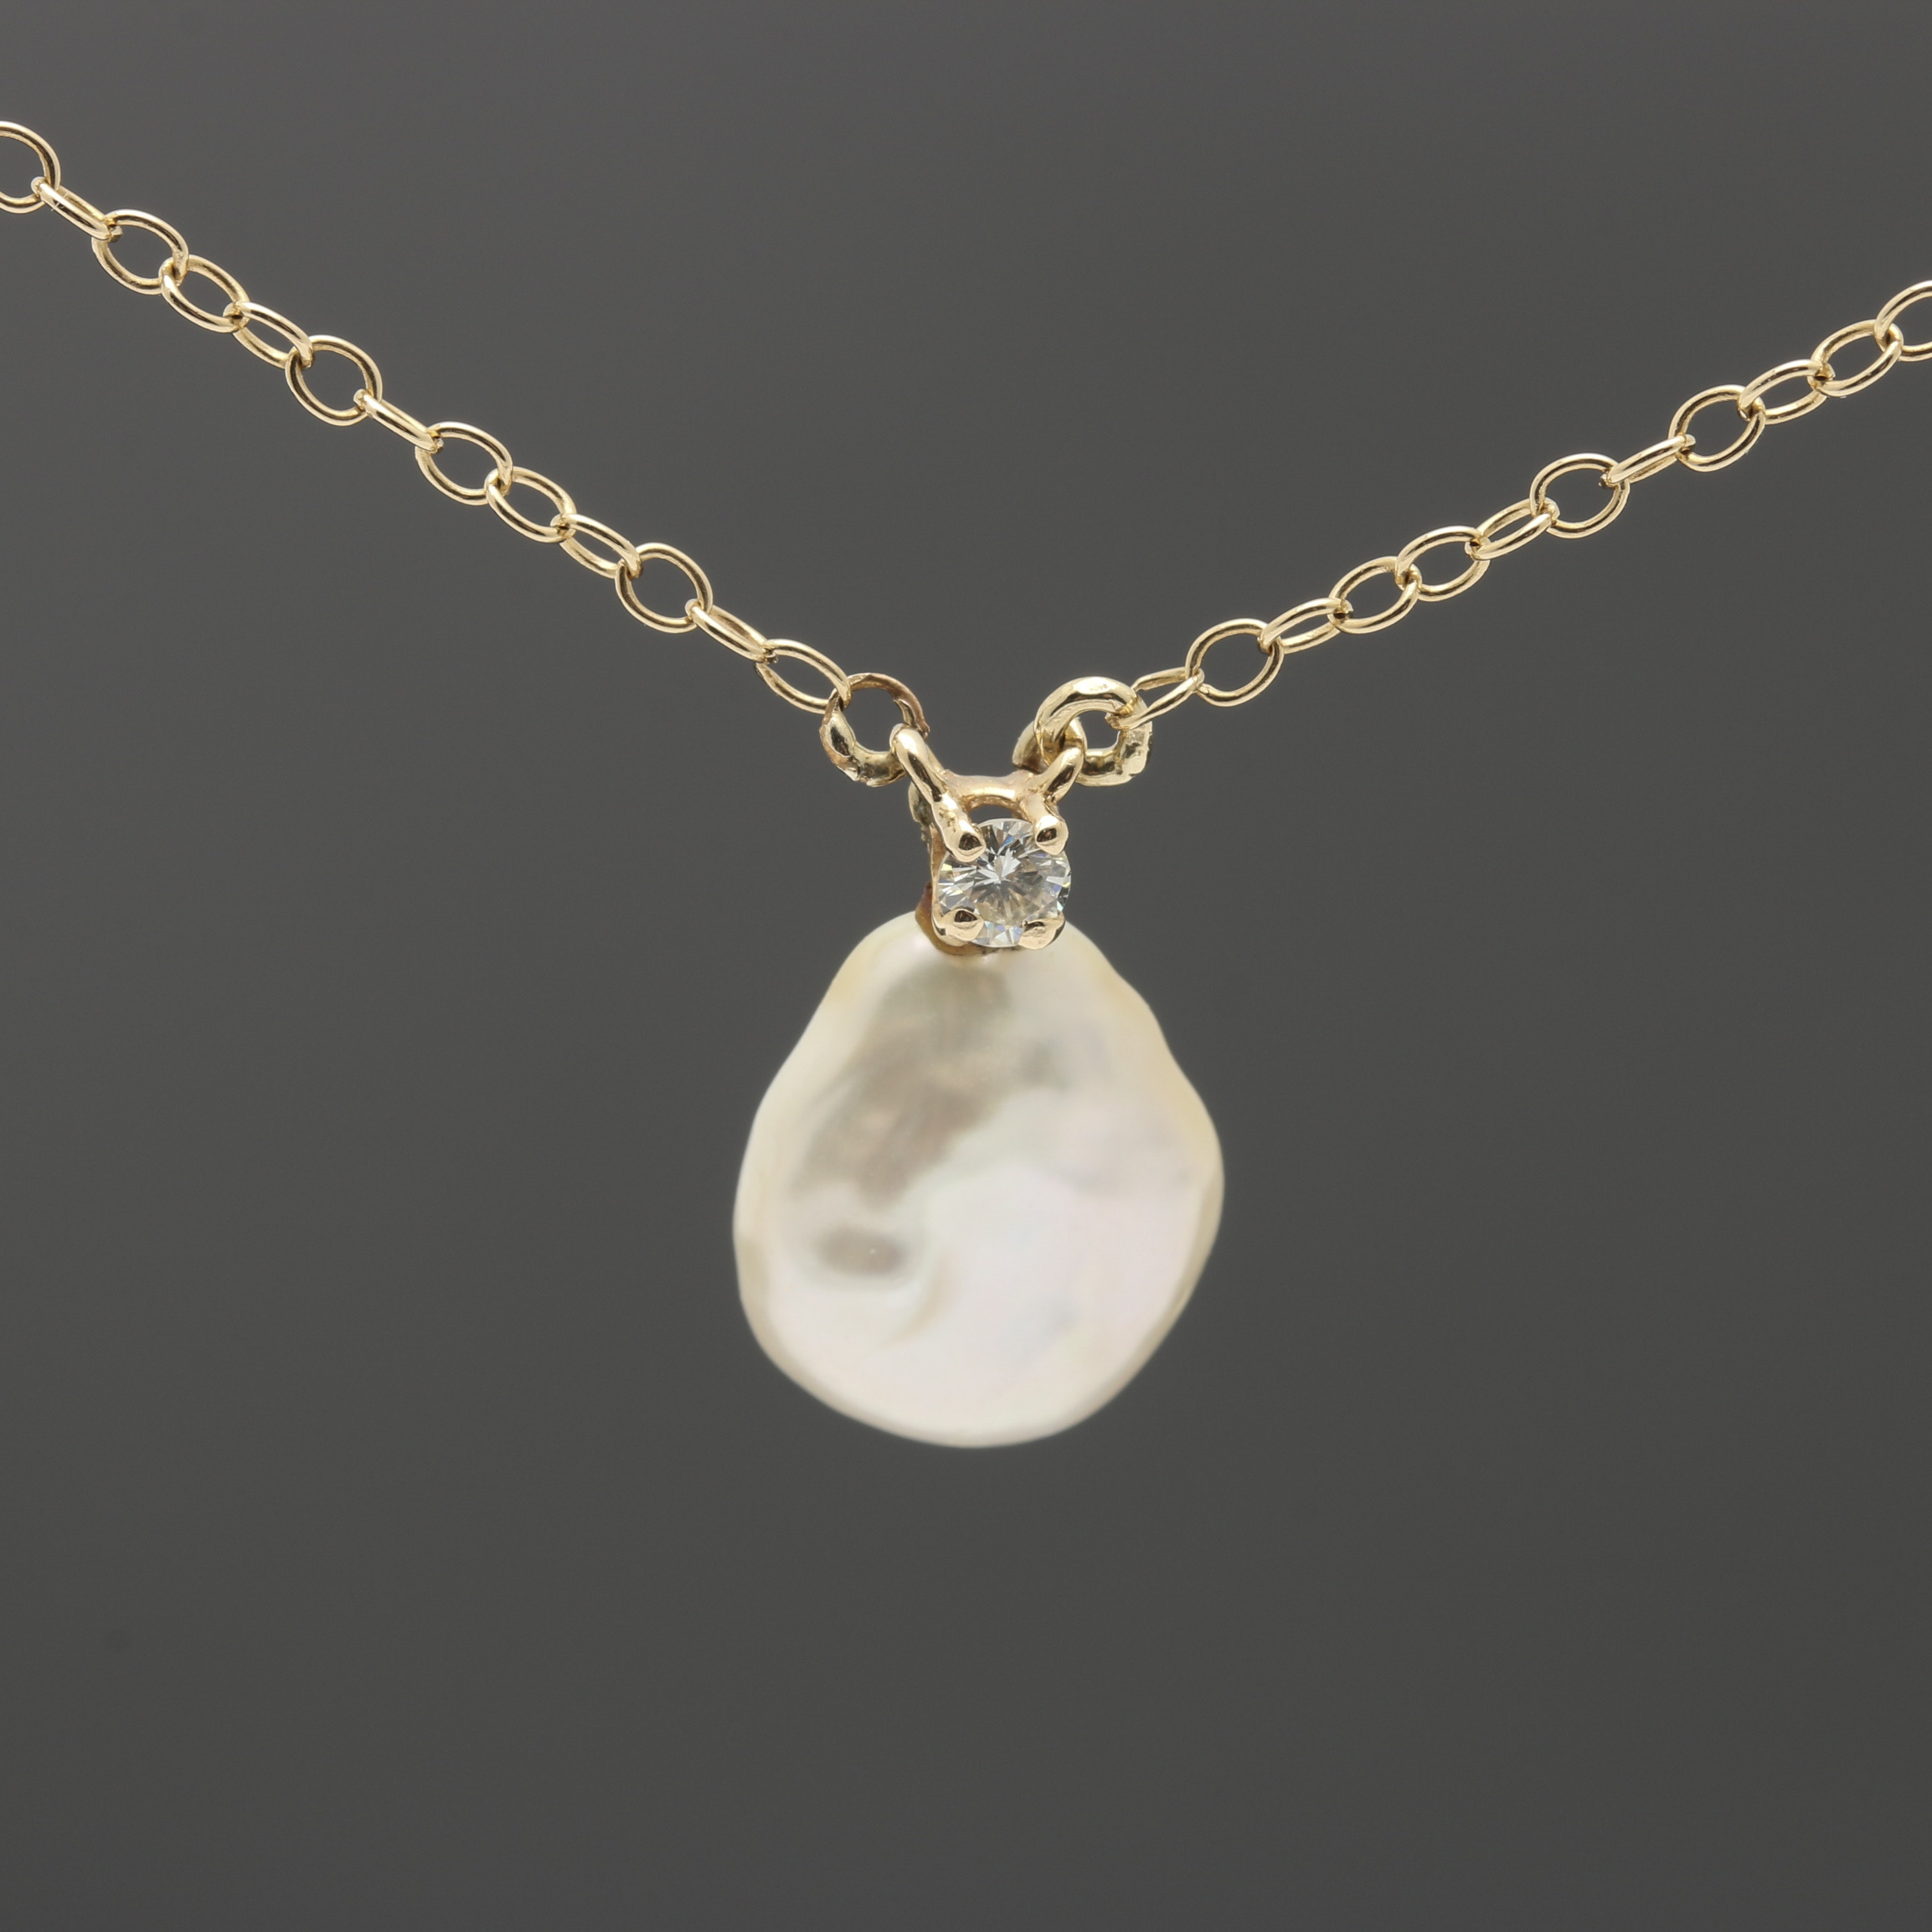 14K Yellow Gold Diamond and Cultured Pearl Necklace